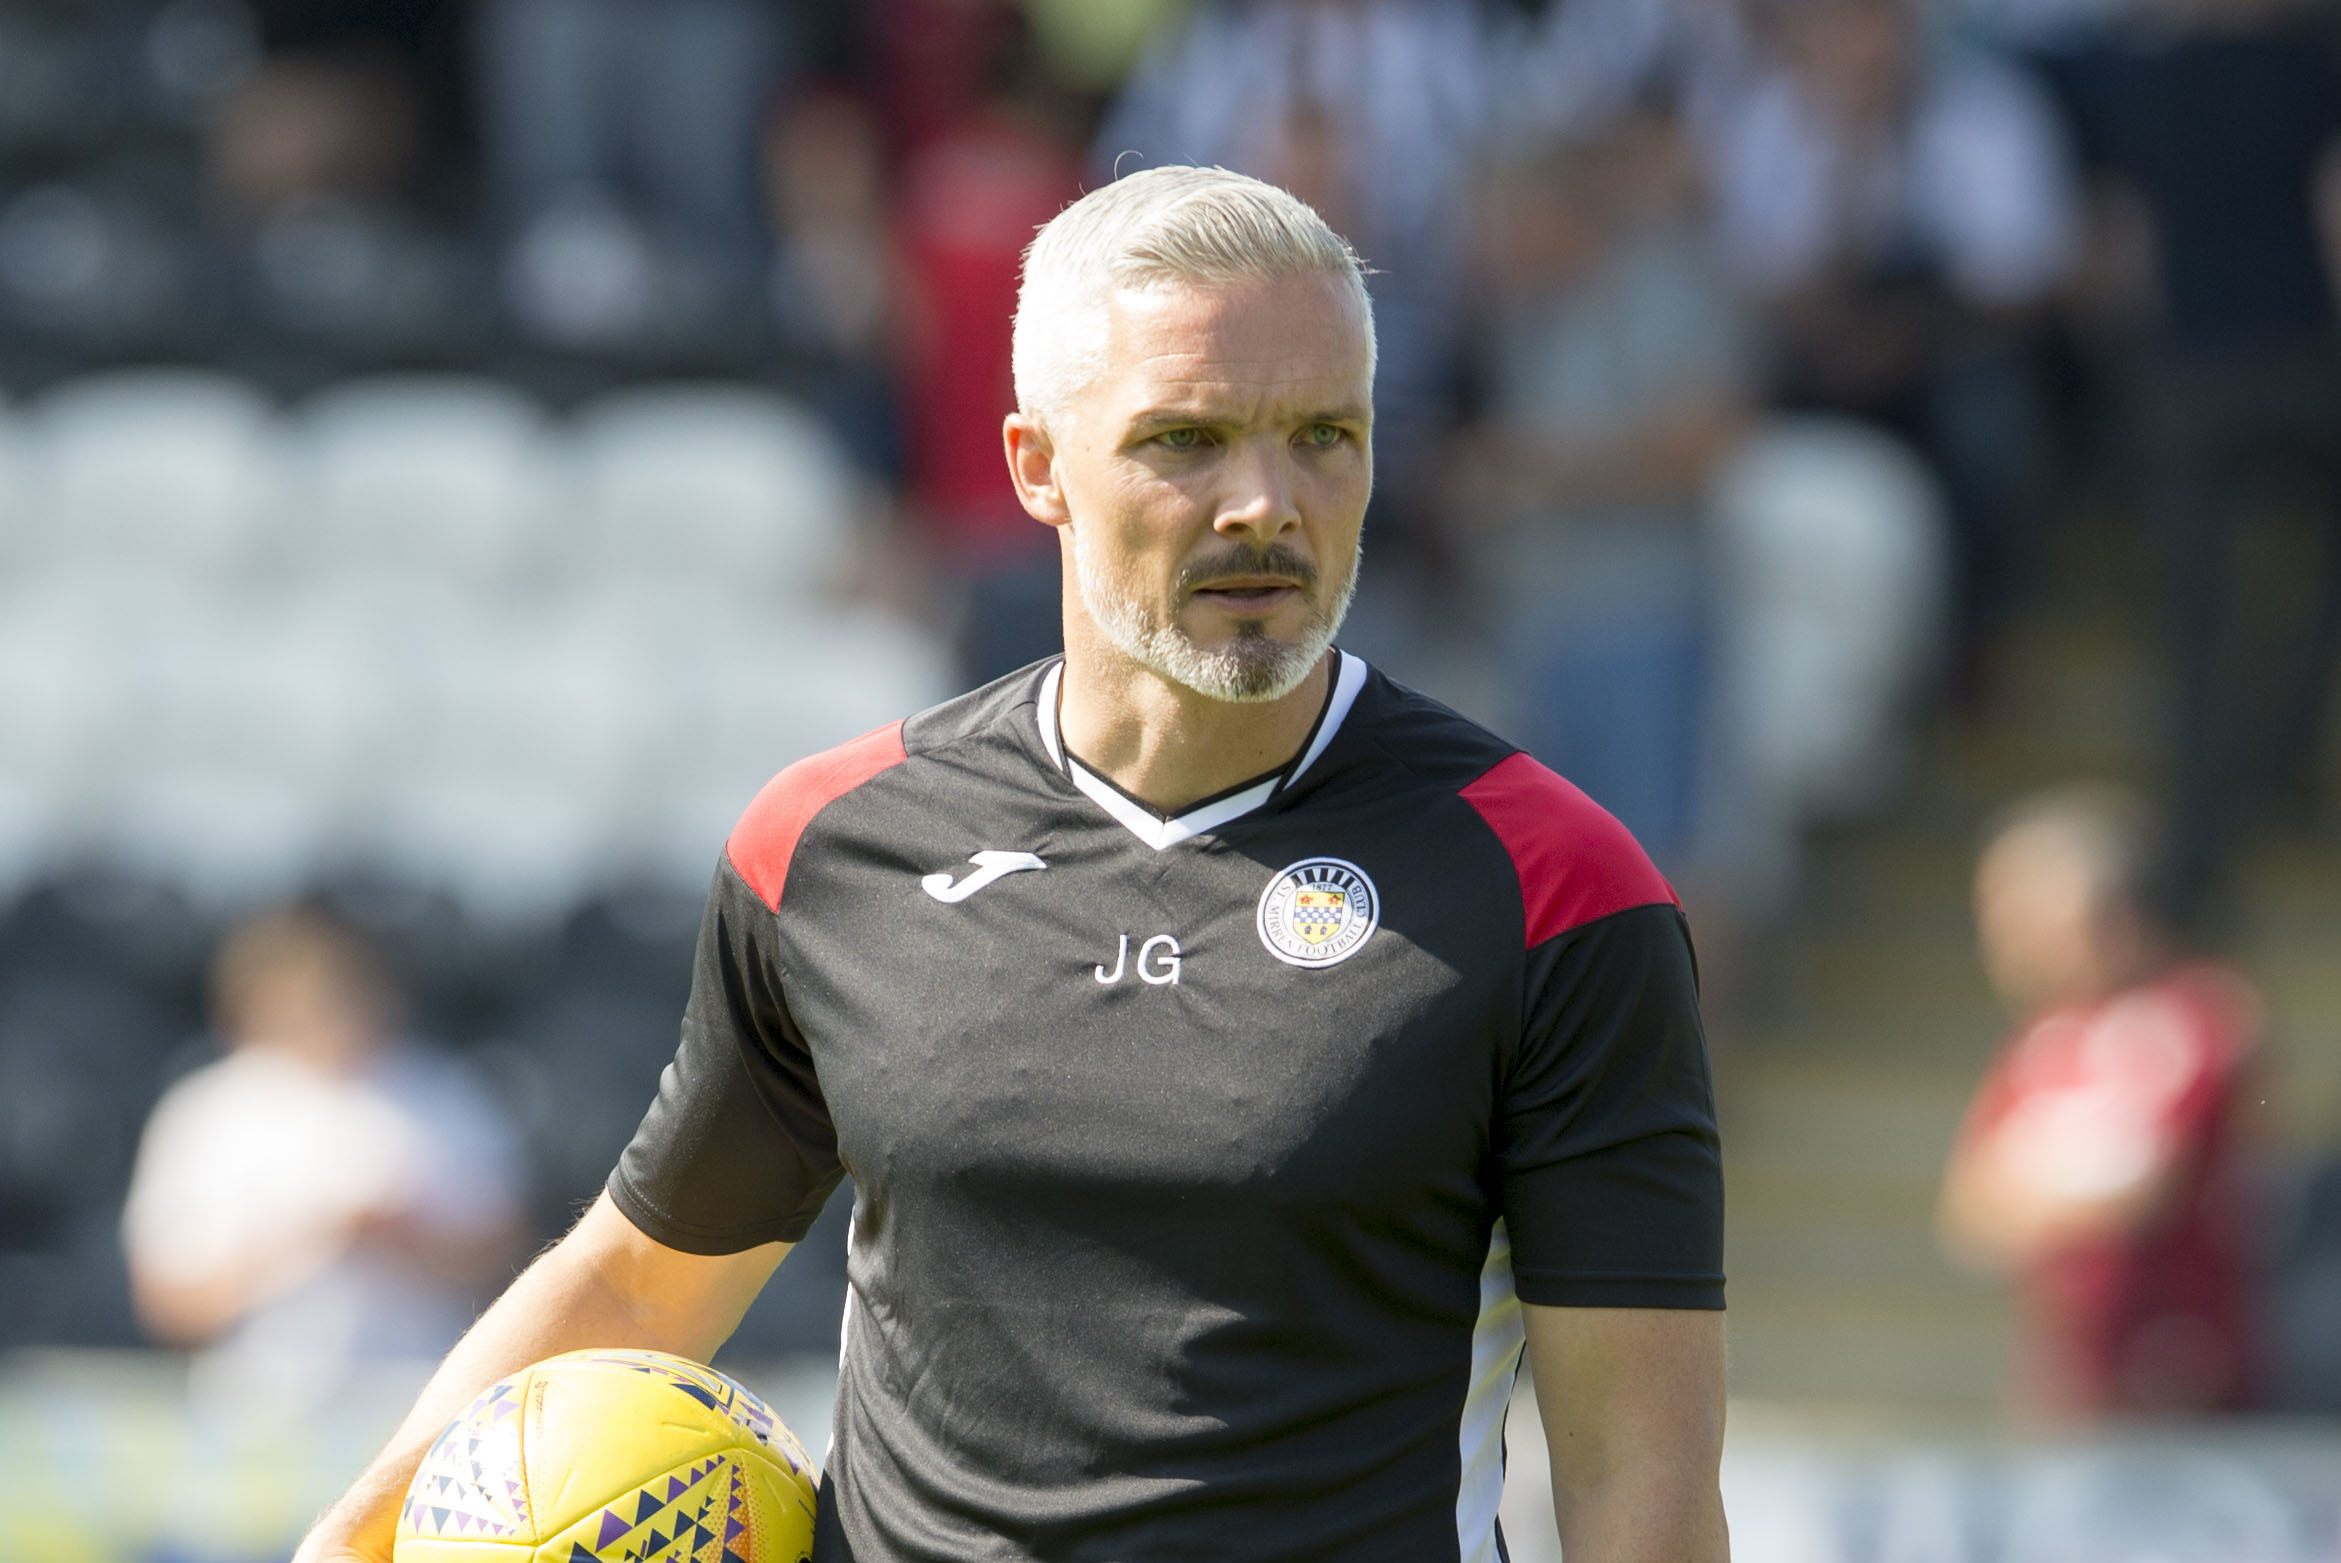 St Mirren manager Jim Goodwin is upbeat after defeat to Rangers